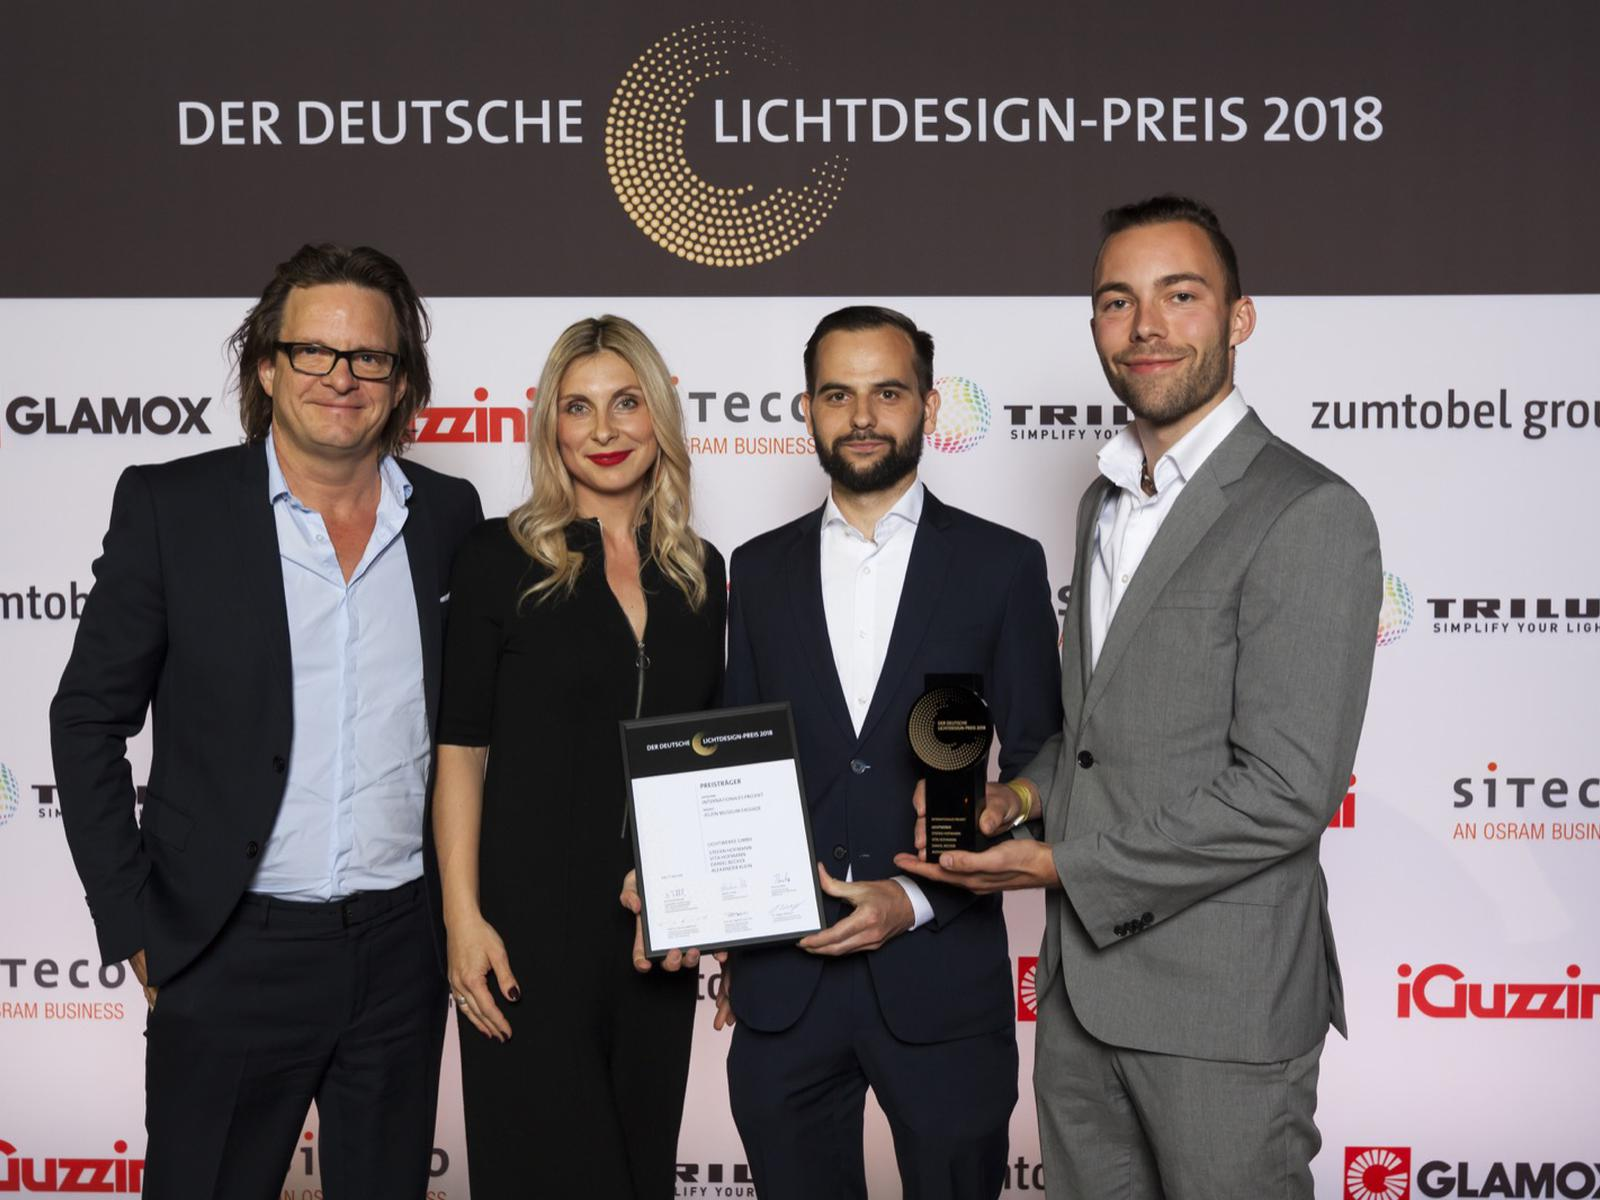 GERMAN LIGHTING DESIGN AWARD 2018